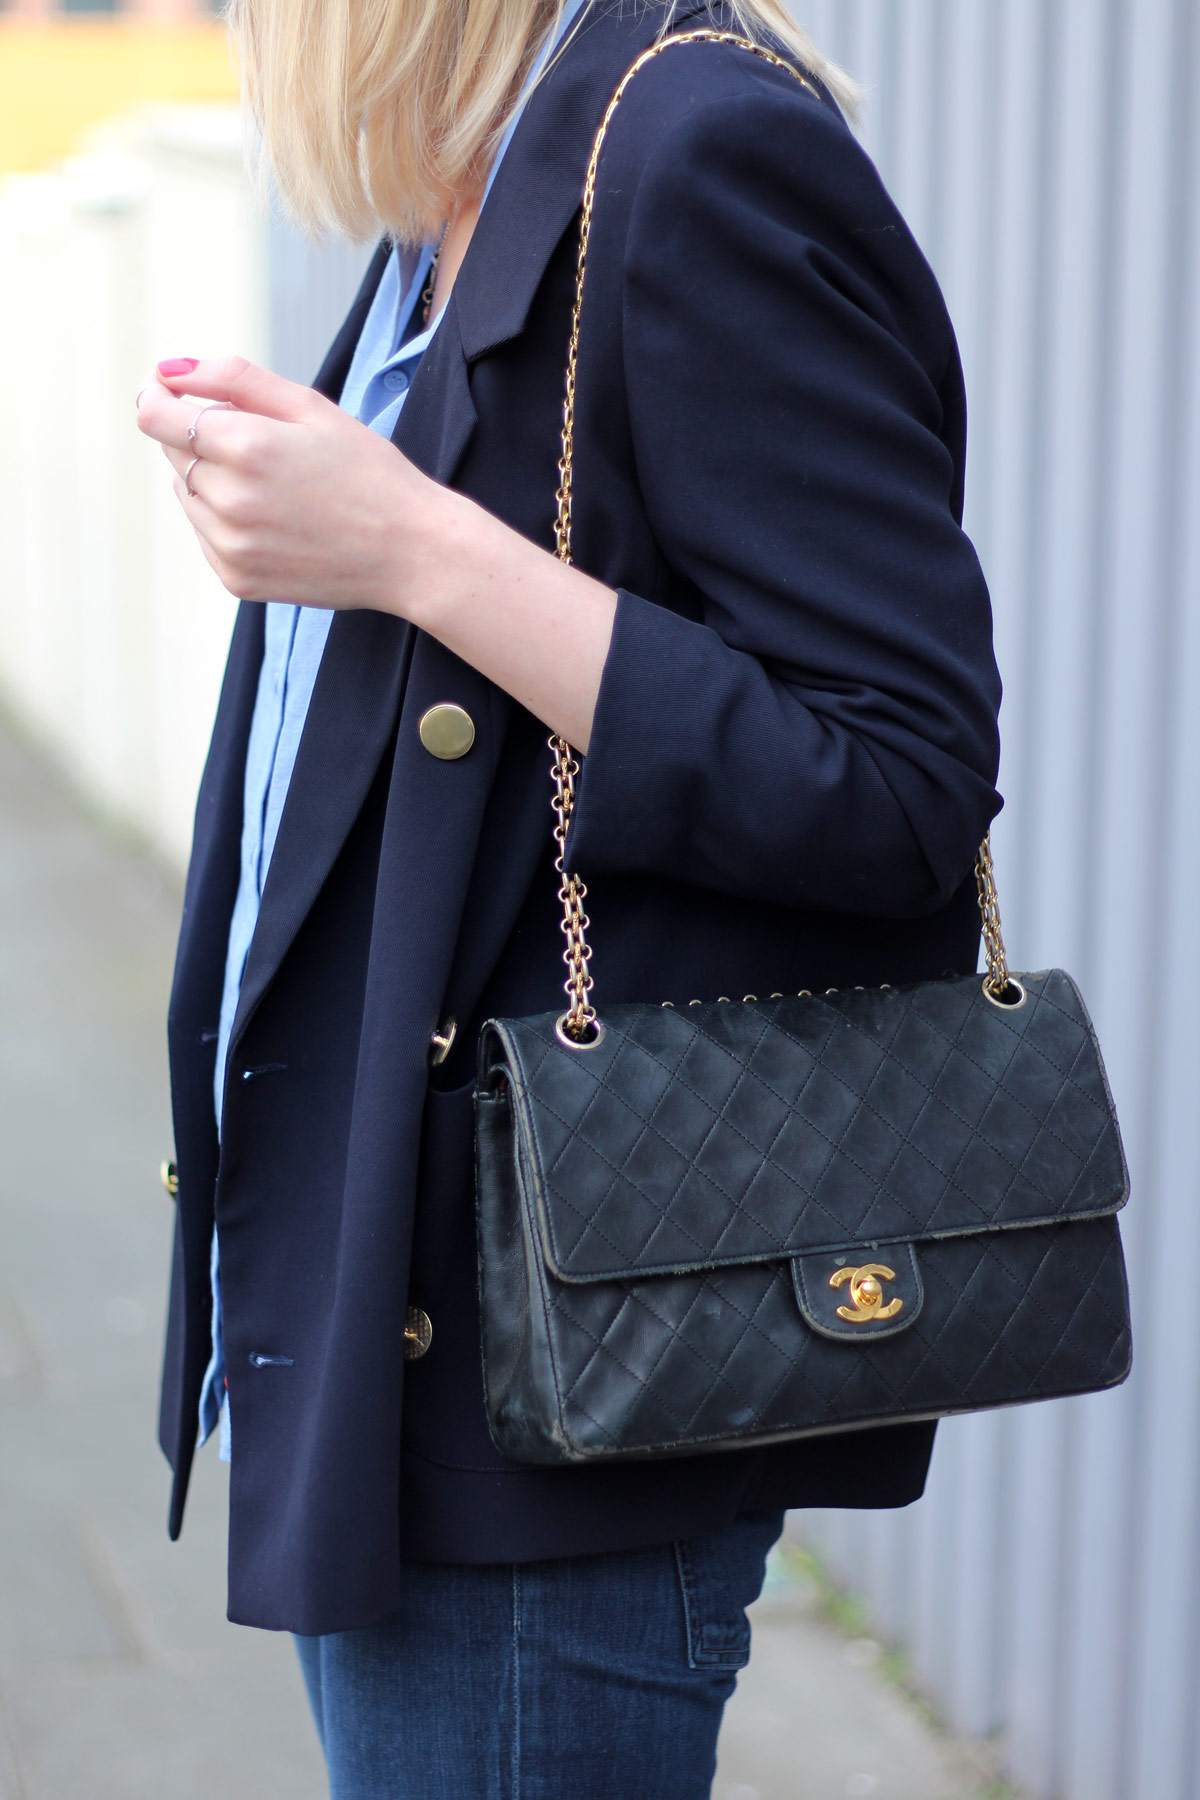 archive-by-alexa-blazer-vintage-chanel-bag-brogue-platform-loafers-16